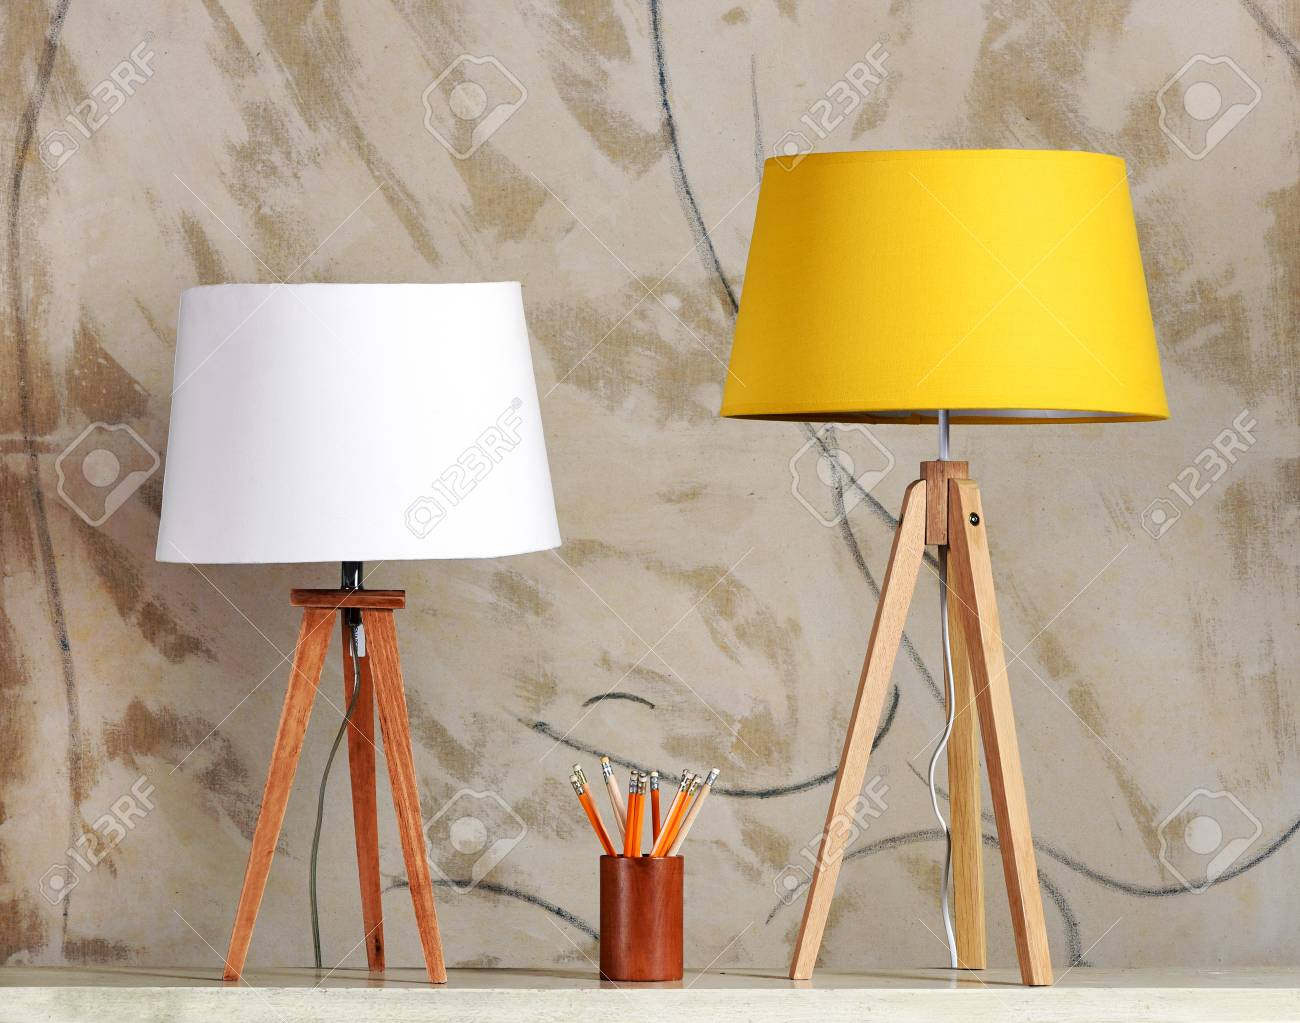 Still Life Of Two Table Lamps With White And Yellow Shades On